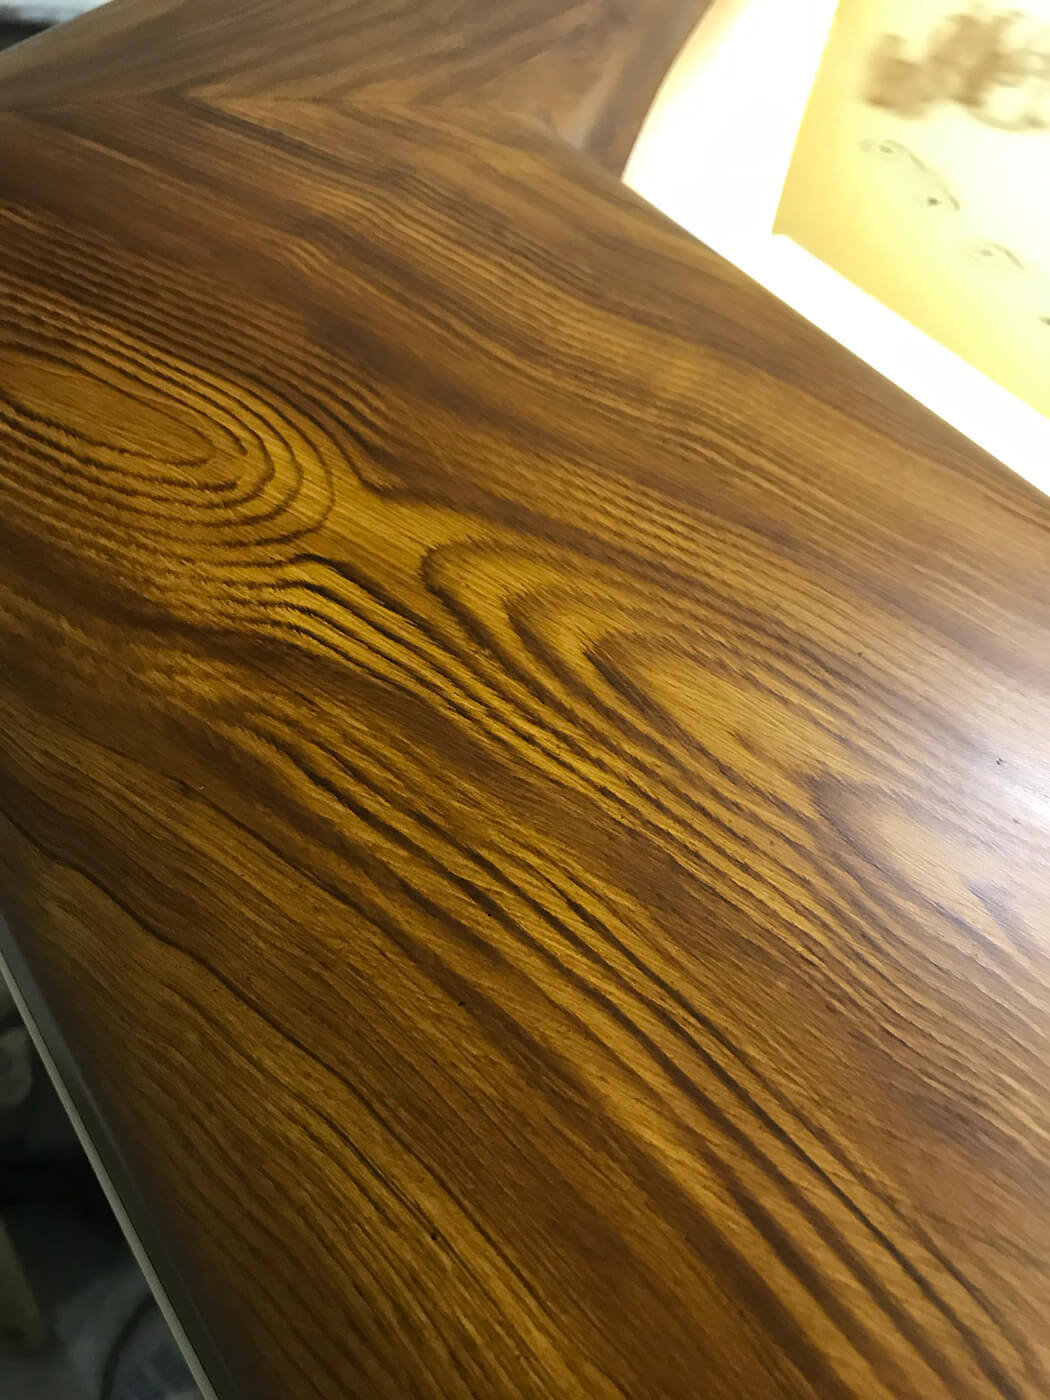 Shearline Boatworks Morehead City North Carolina Faux Teak toe rail wood grain boat detail